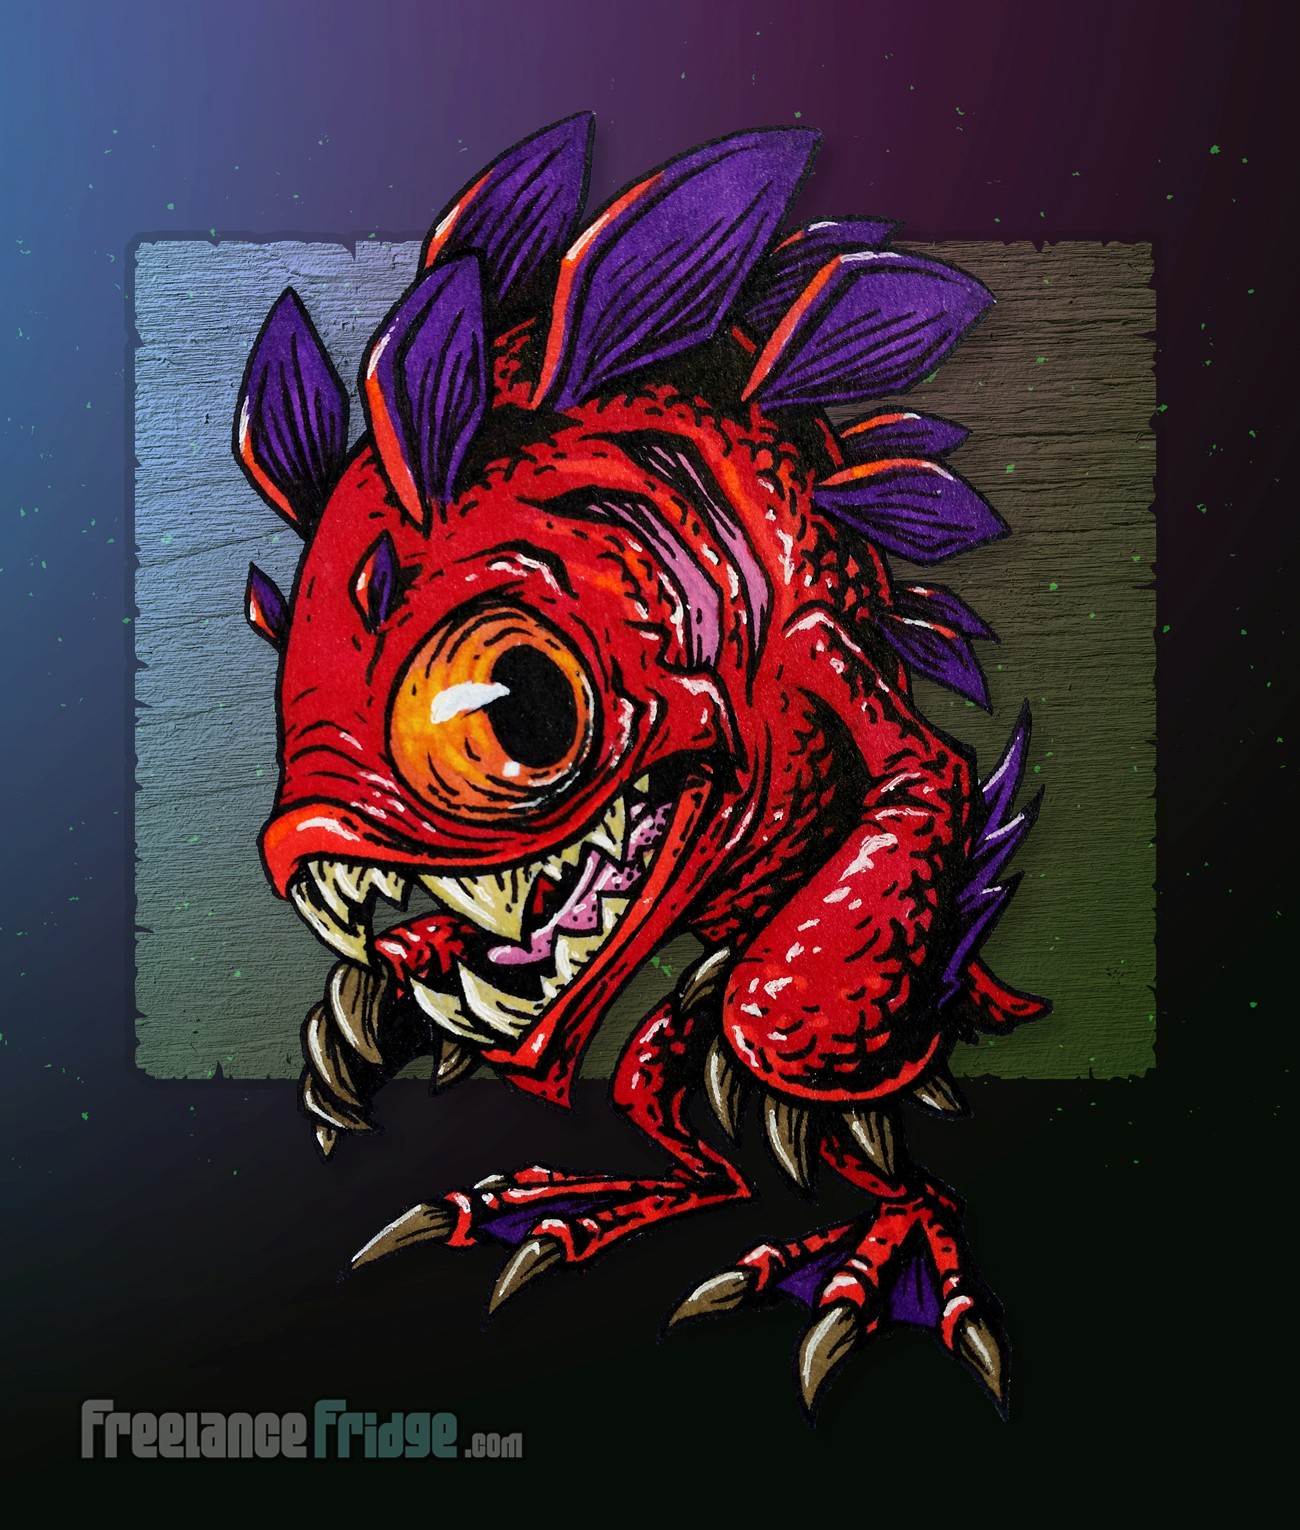 Murloc Fish Creature Design : Freelance Fridge- Illustration ...